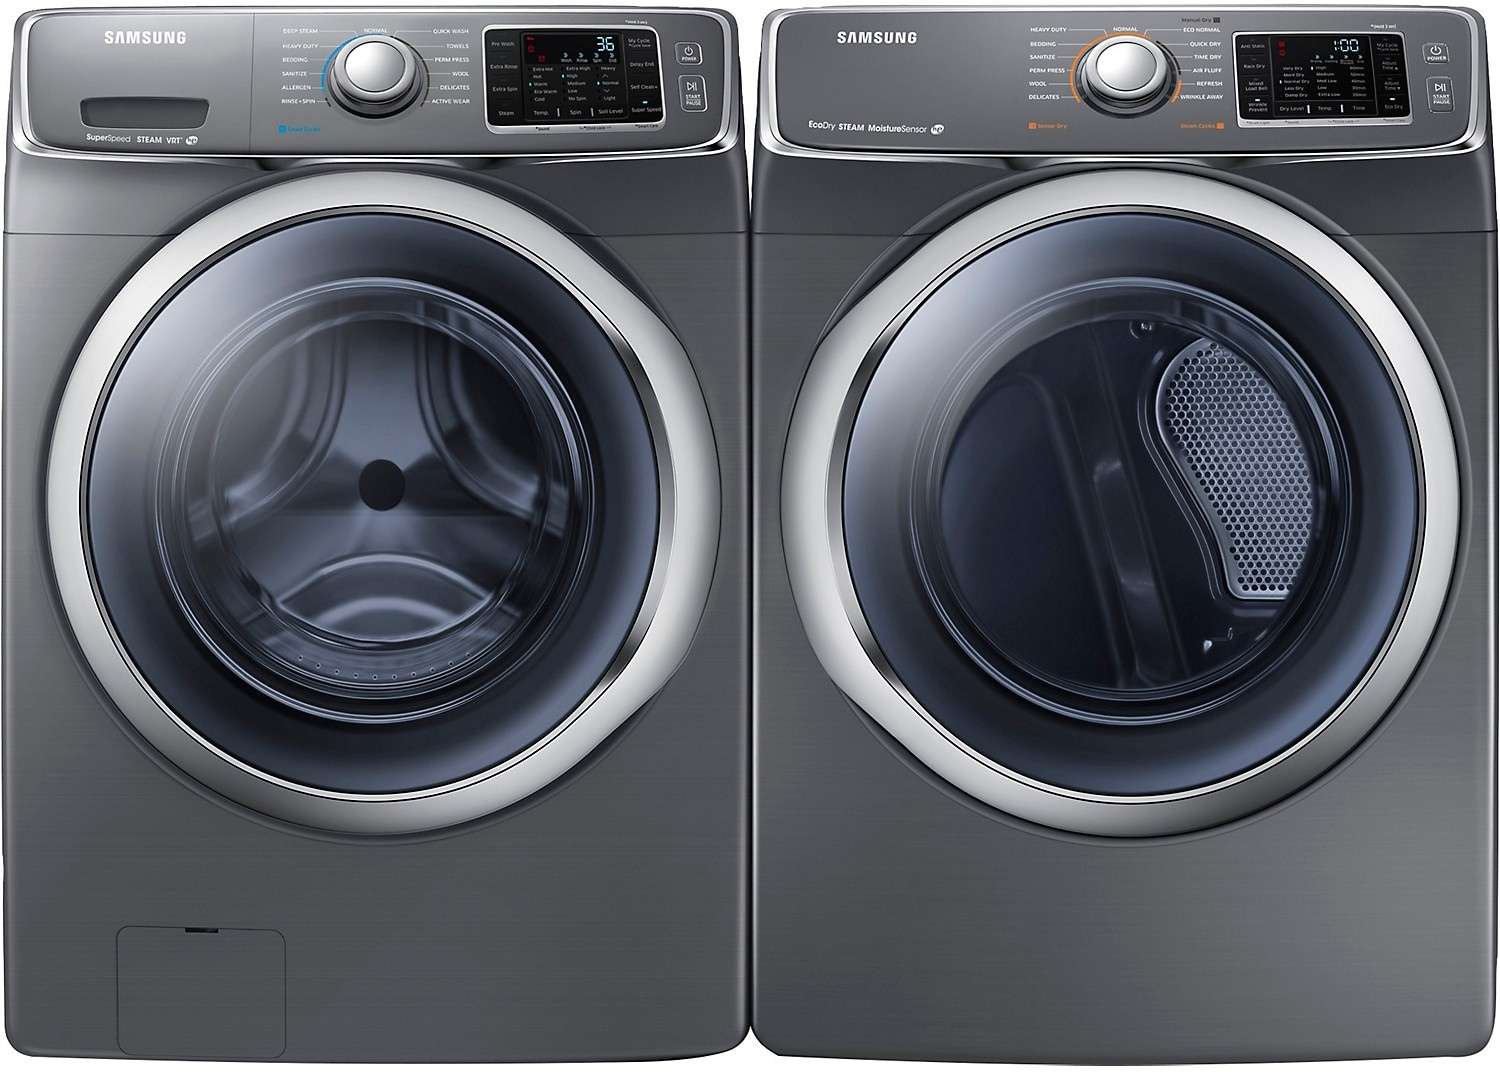 Washers and Dryers - Samsung 4.8 Cu. Ft. Front-Load Washer and 7.5 Cu. Ft. Electric Dryer – Platinum